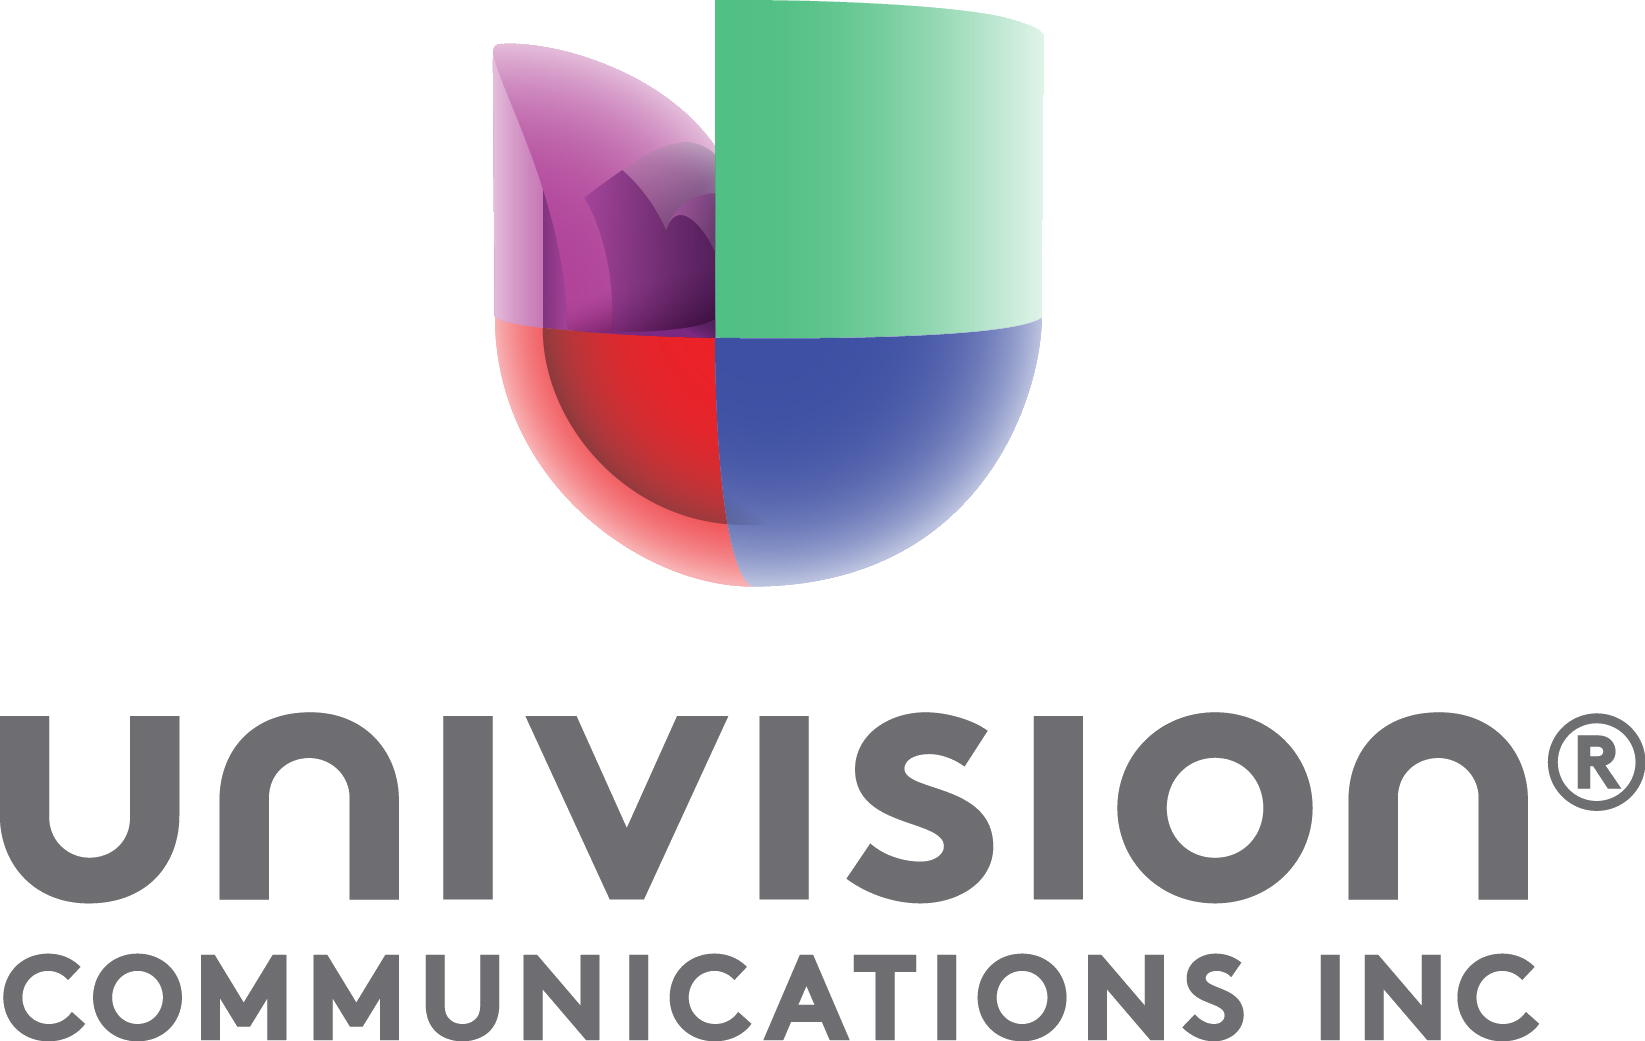 New_Univision_Communications_logo.png